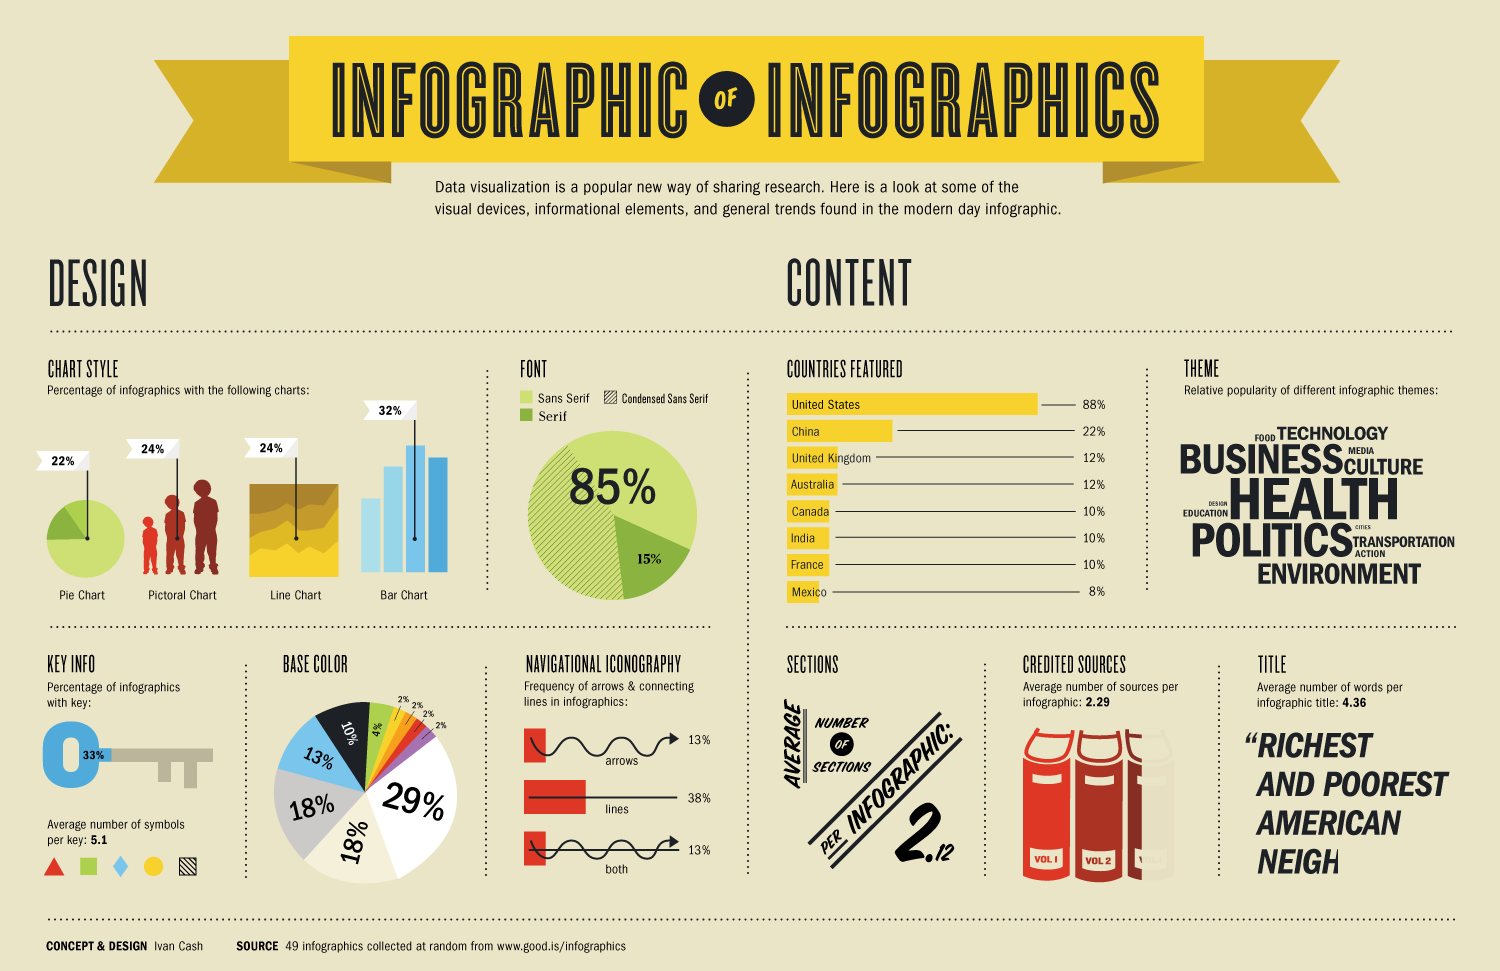 16 Free Sites Infographic Images